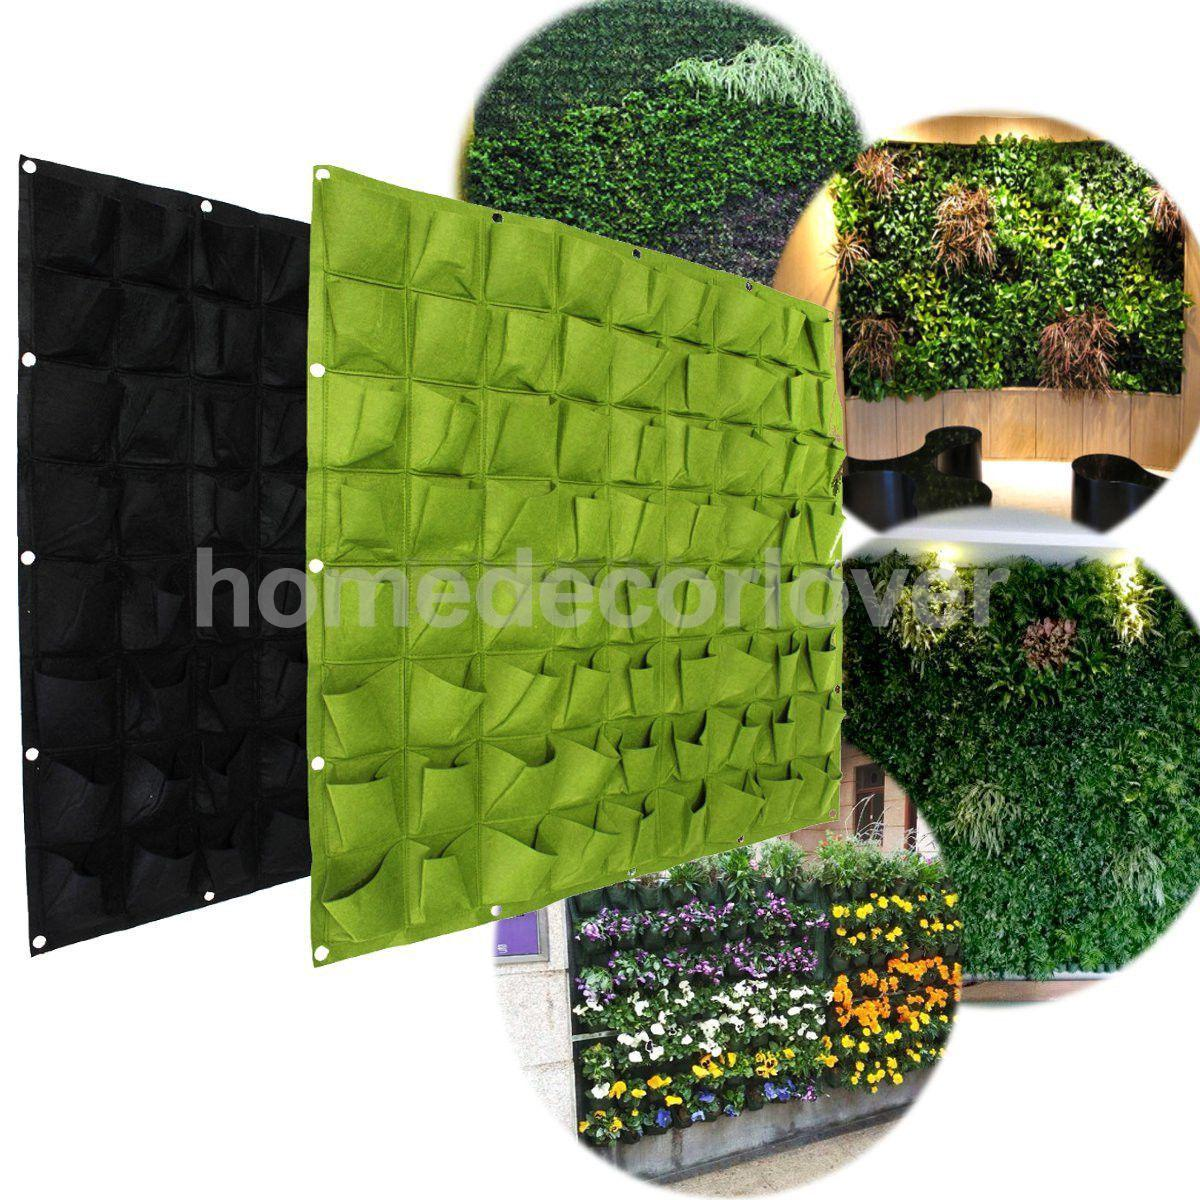 72 pockets hanging garden wall flower planter bag indooroutdoor 72 pockets hanging garden wall flower planter bag indooroutdoor herb pot in flower pots planters from home garden on aliexpress alibaba group workwithnaturefo